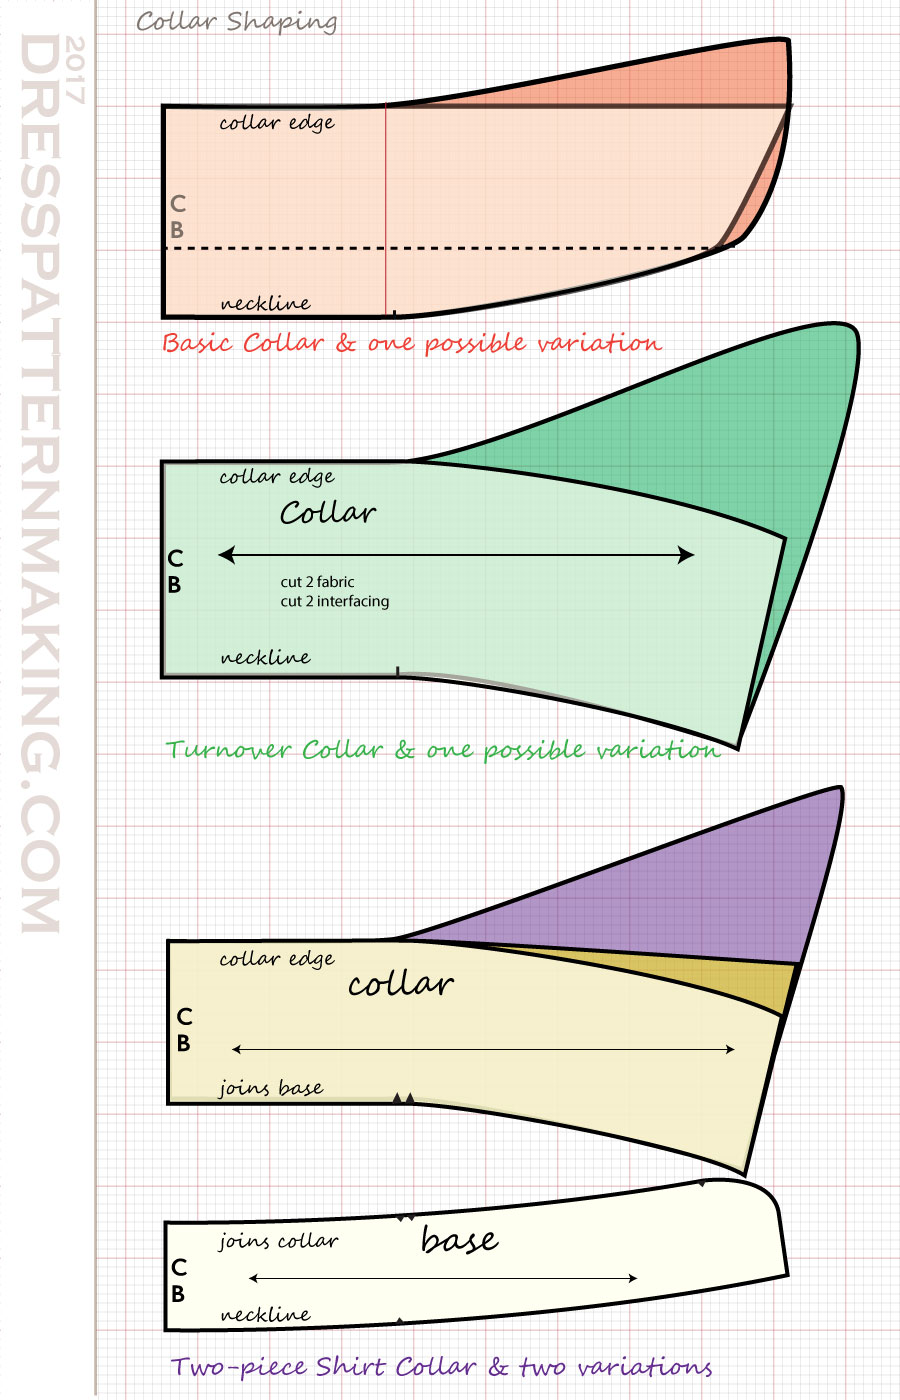 collar-shaping